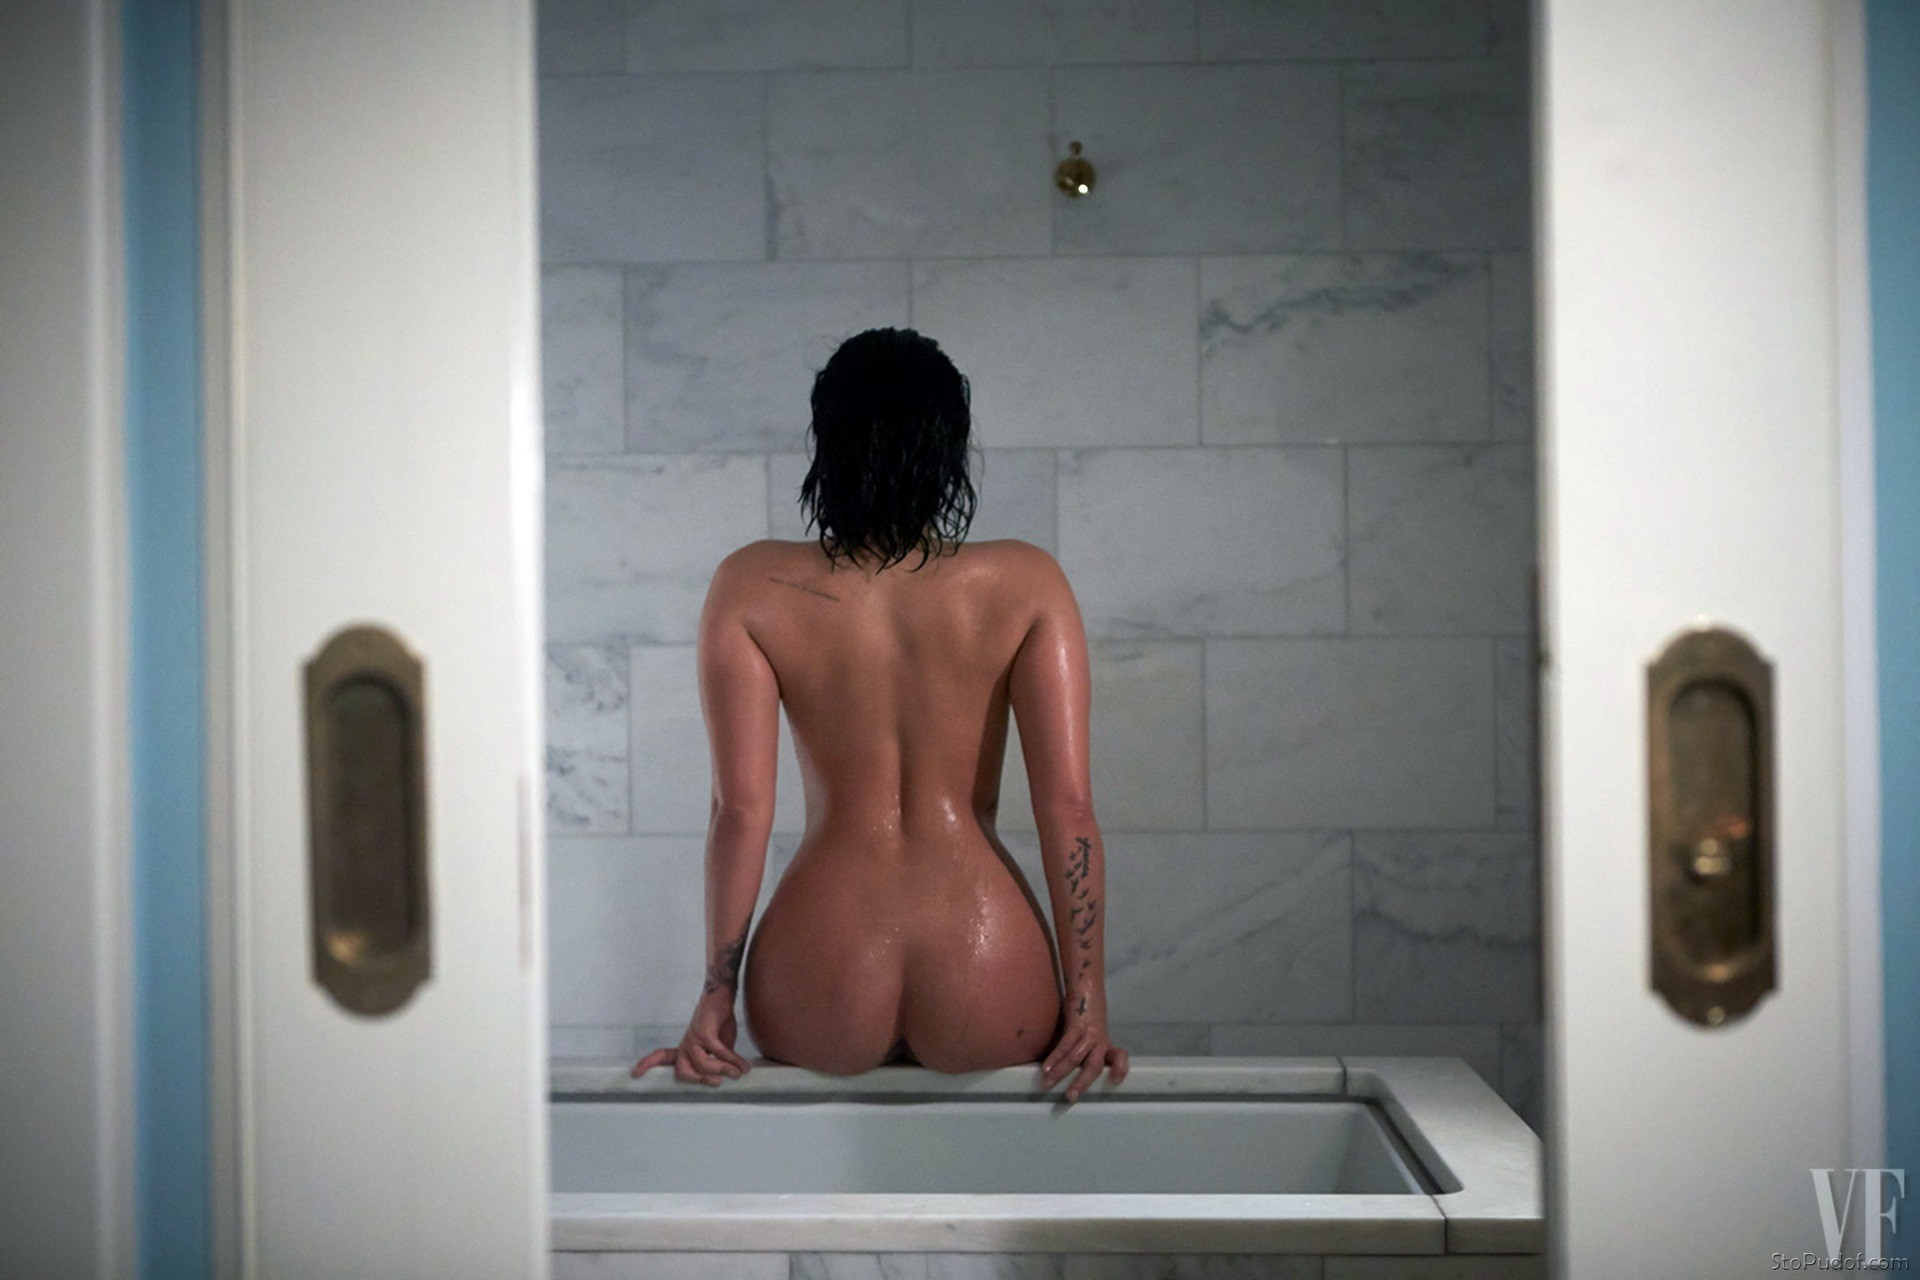 Demi Lovato leaked nude celebrity photos - UkPhotoSafari